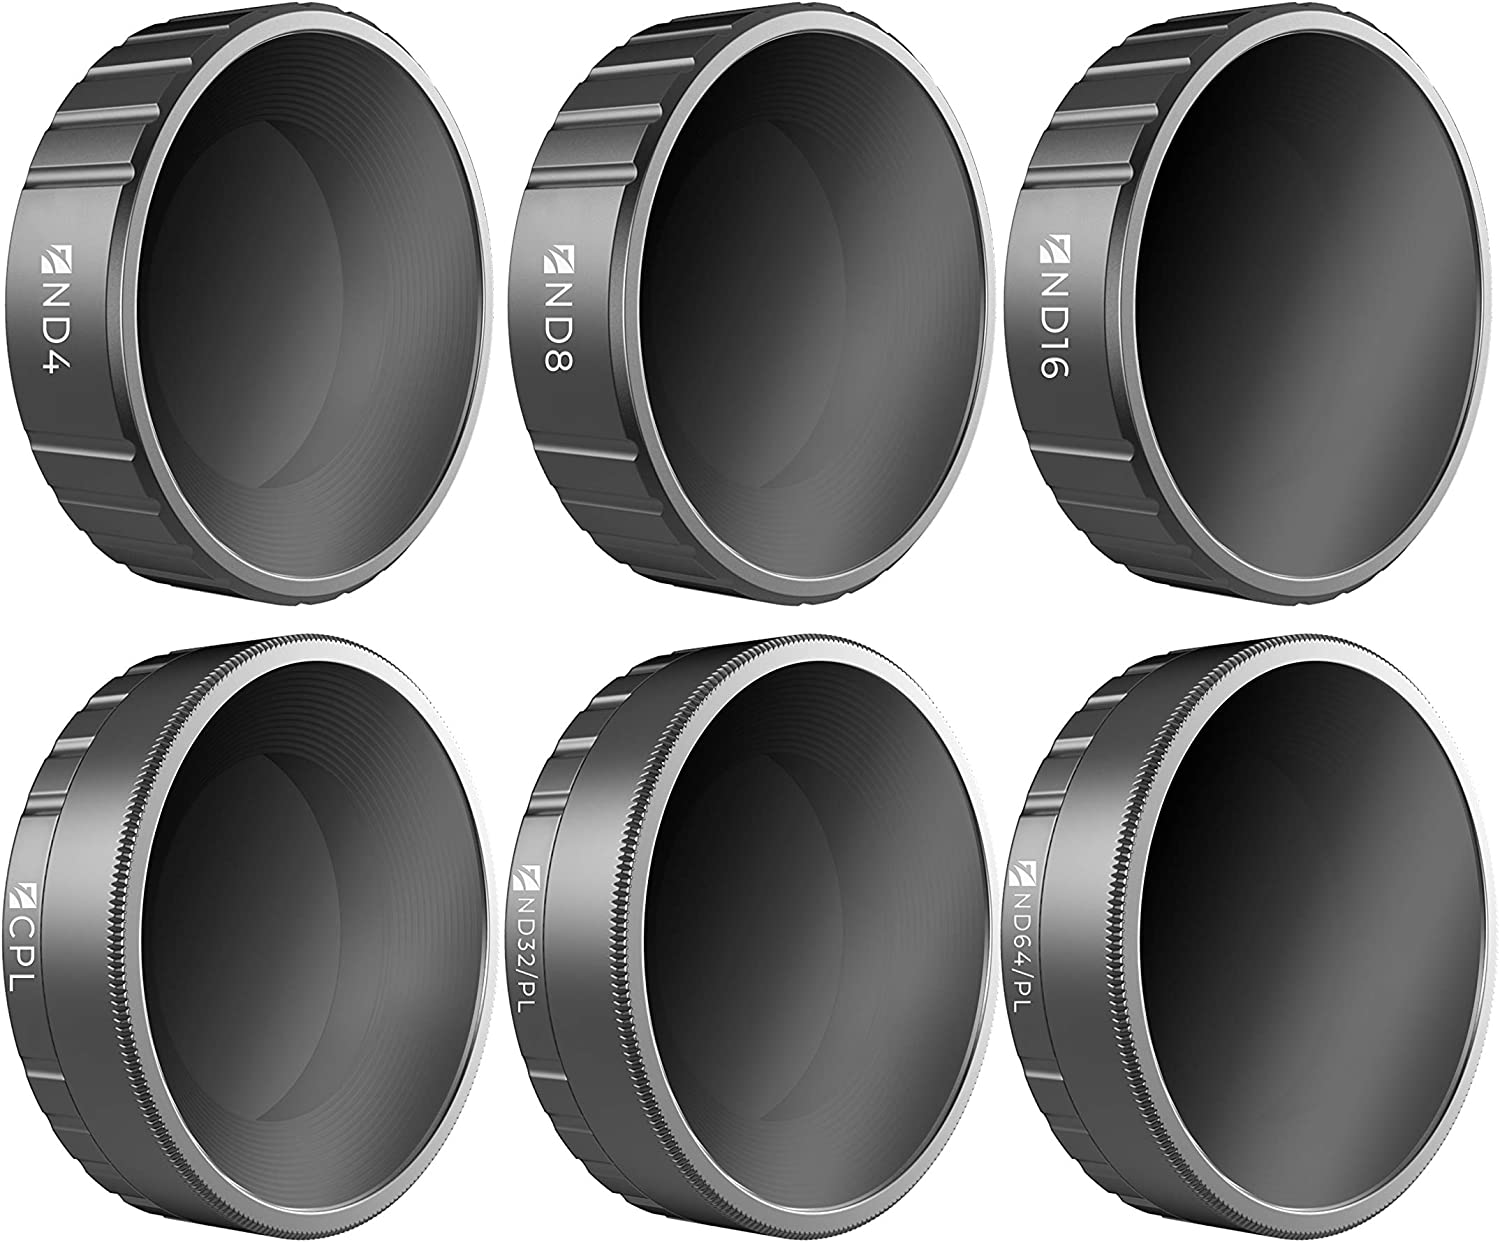 ND32//PL CPL ND16 6Pack ND4 E Series Freewell Budget Kit ND8 ND64//PL Camera Lens Filters Compatible with DJI Osmo Action Camera